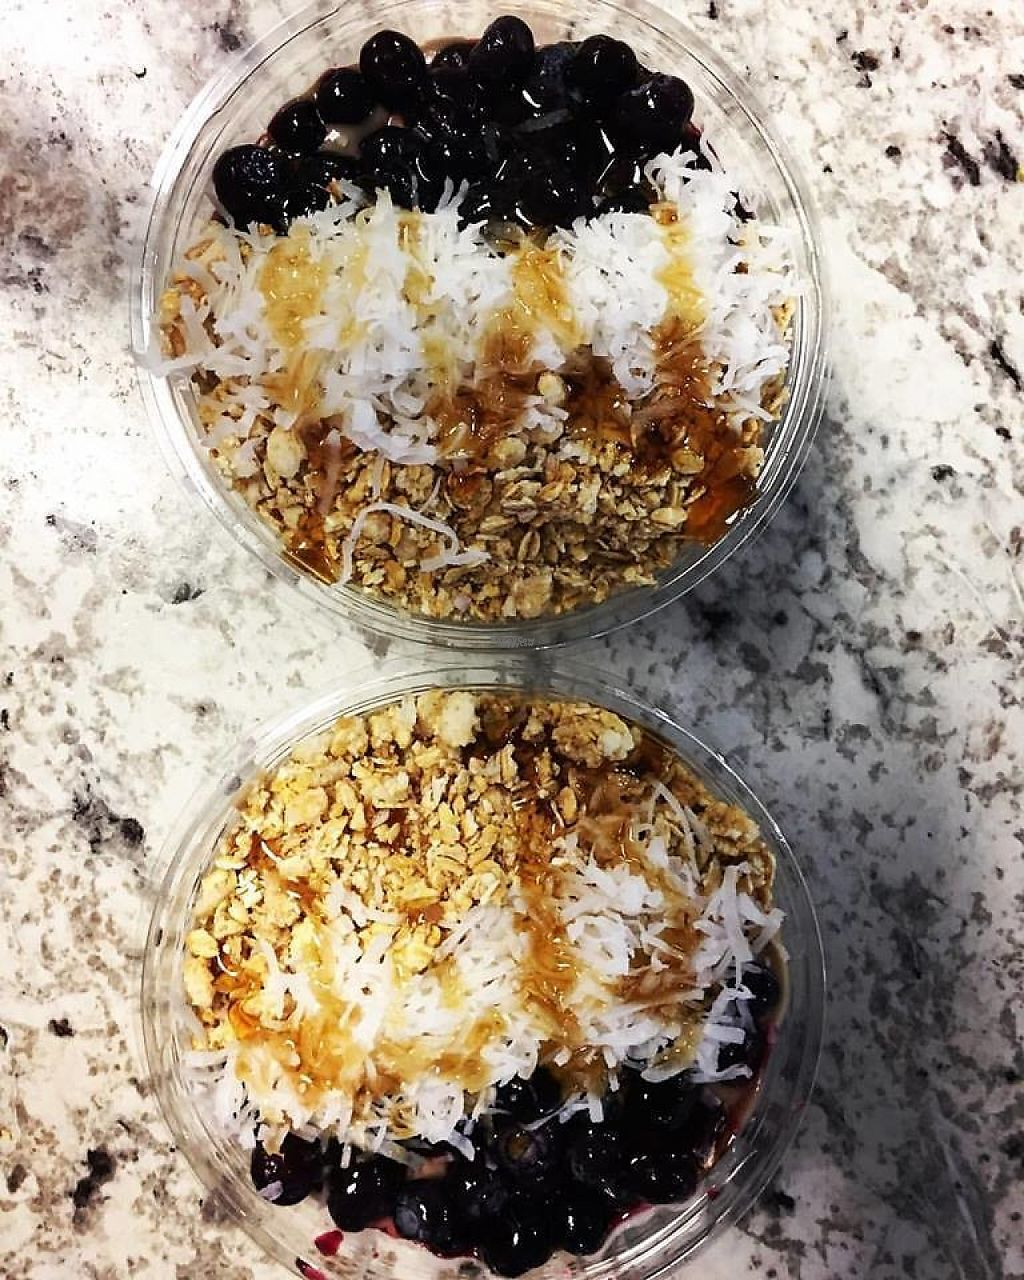 """Photo of Quench Juicery  by <a href=""""/members/profile/community"""">community</a> <br/>acai bowls  <br/> January 24, 2017  - <a href='/contact/abuse/image/74862/215637'>Report</a>"""